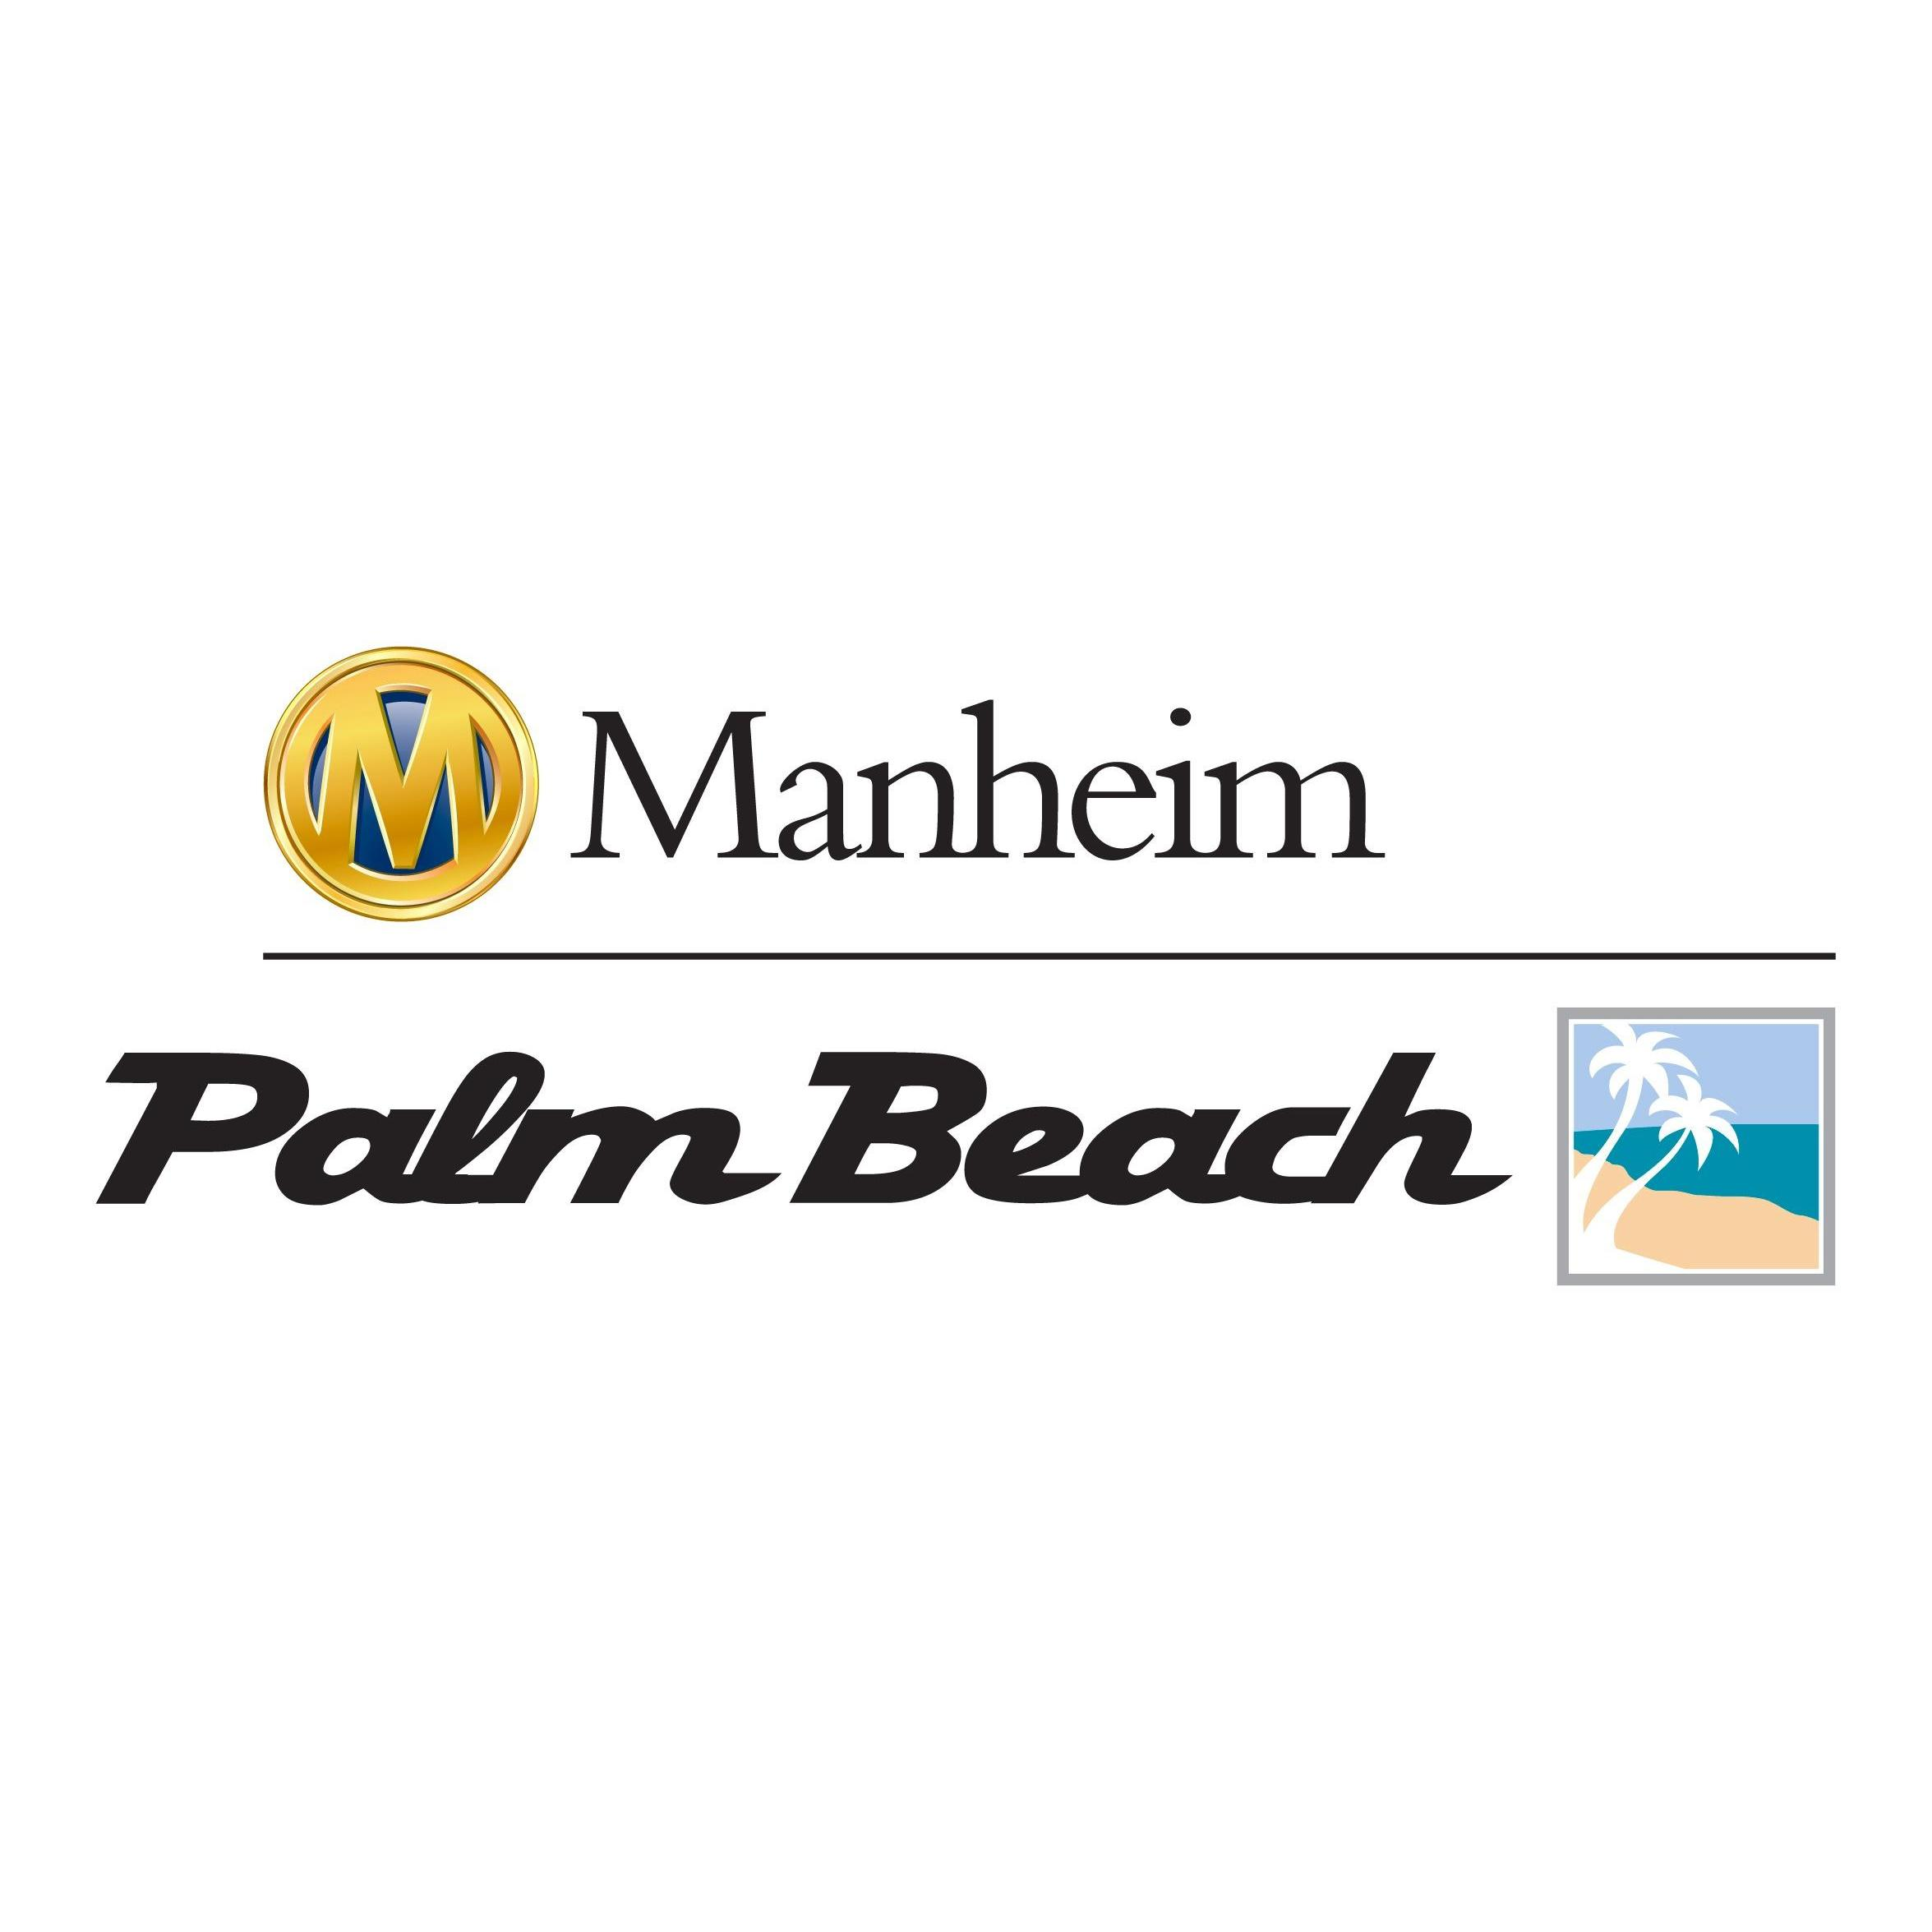 Manheim san diego auto auction / Best buy ihome